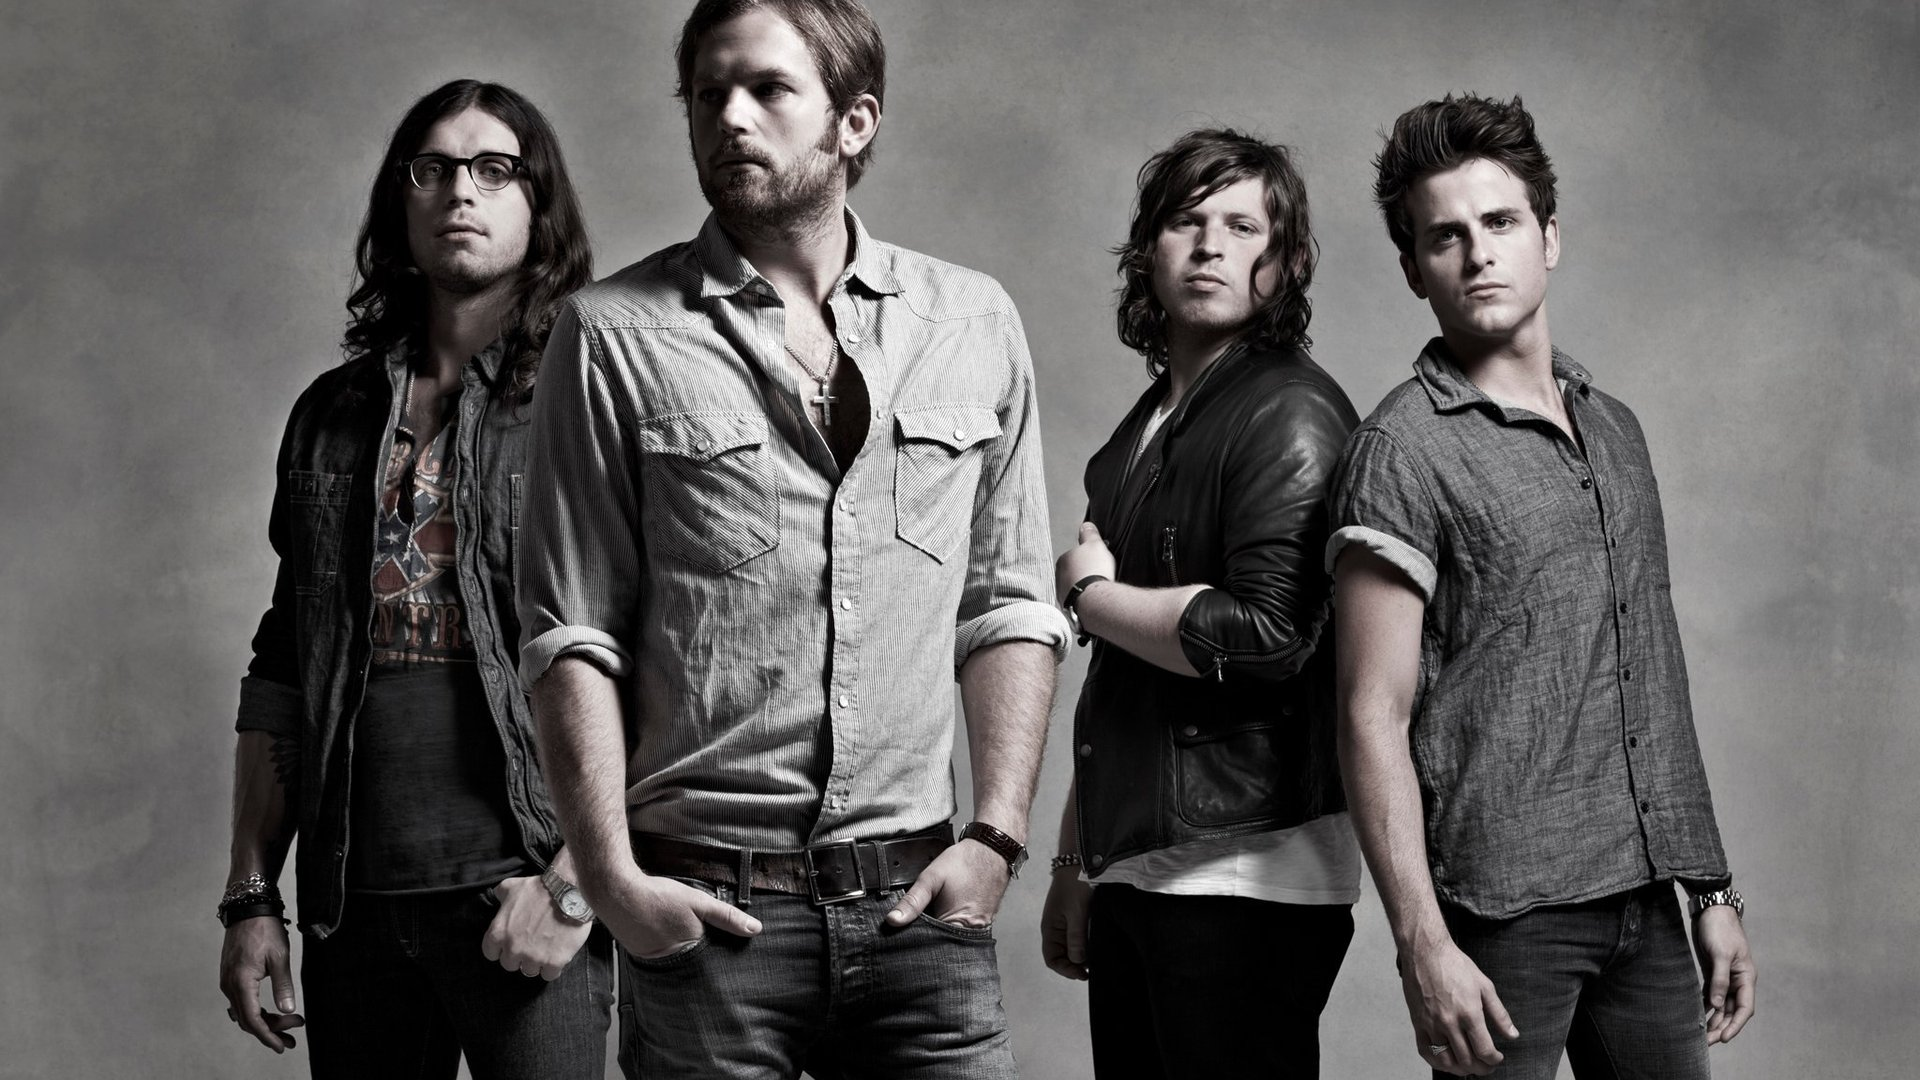 Kings Of Leon Wallpaper 20025 1920x1080 px